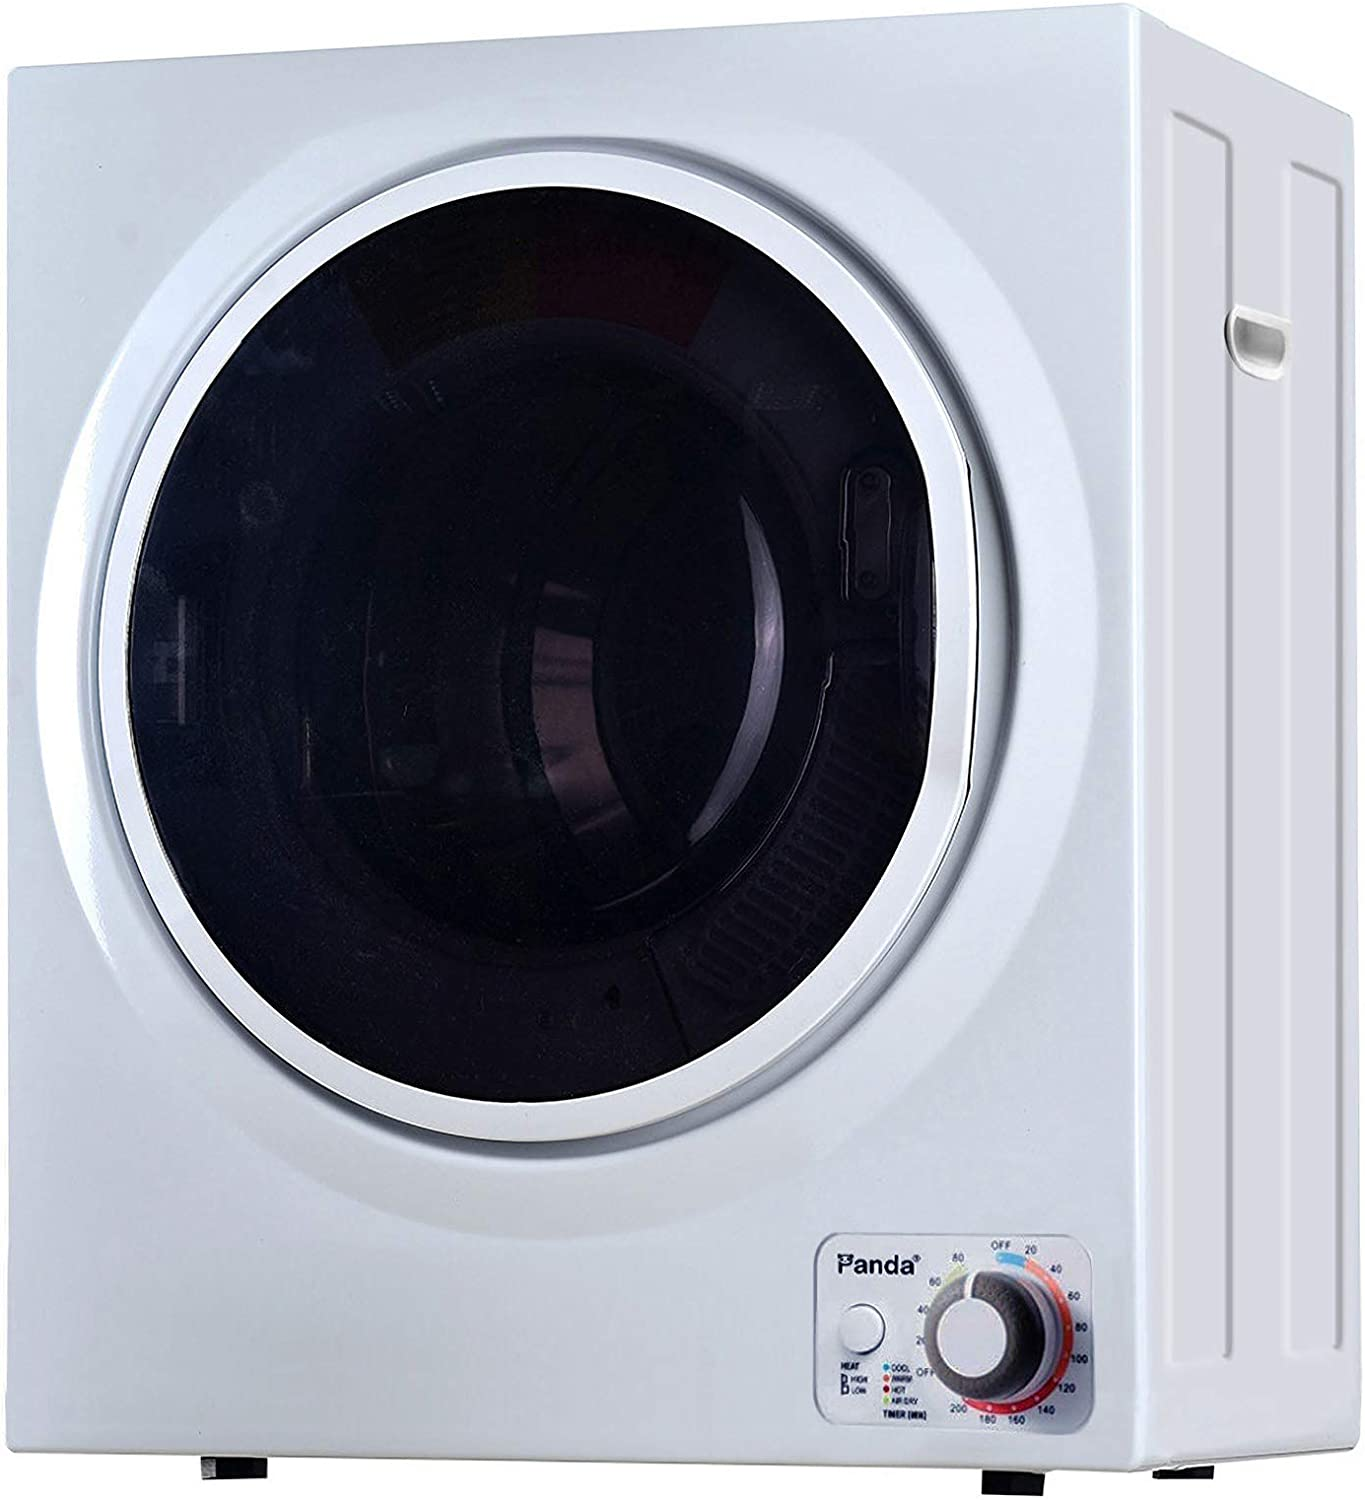 Panda 110V Electric Portable Compact Laundry Clothes Dryer